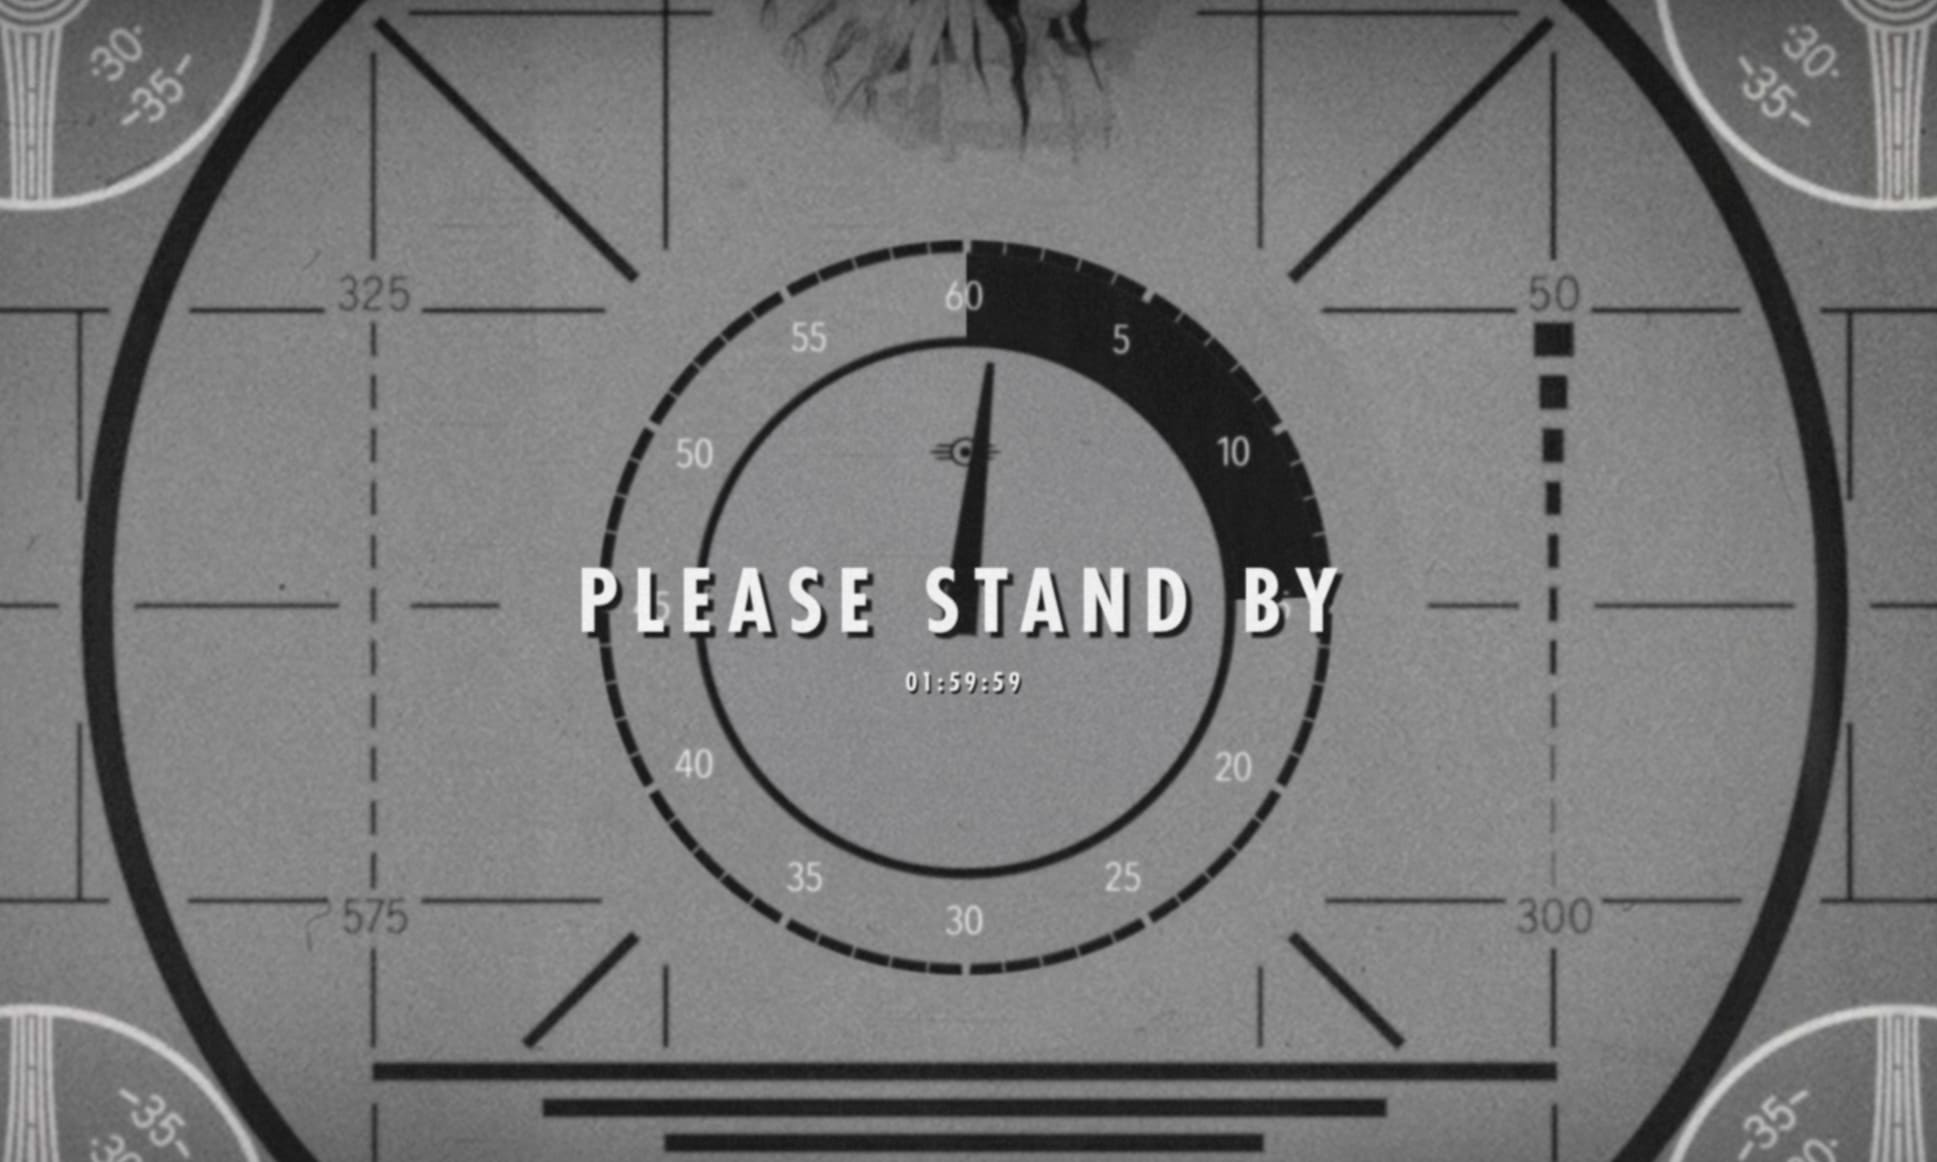 New Fallout Please Stand By Countdown Clock